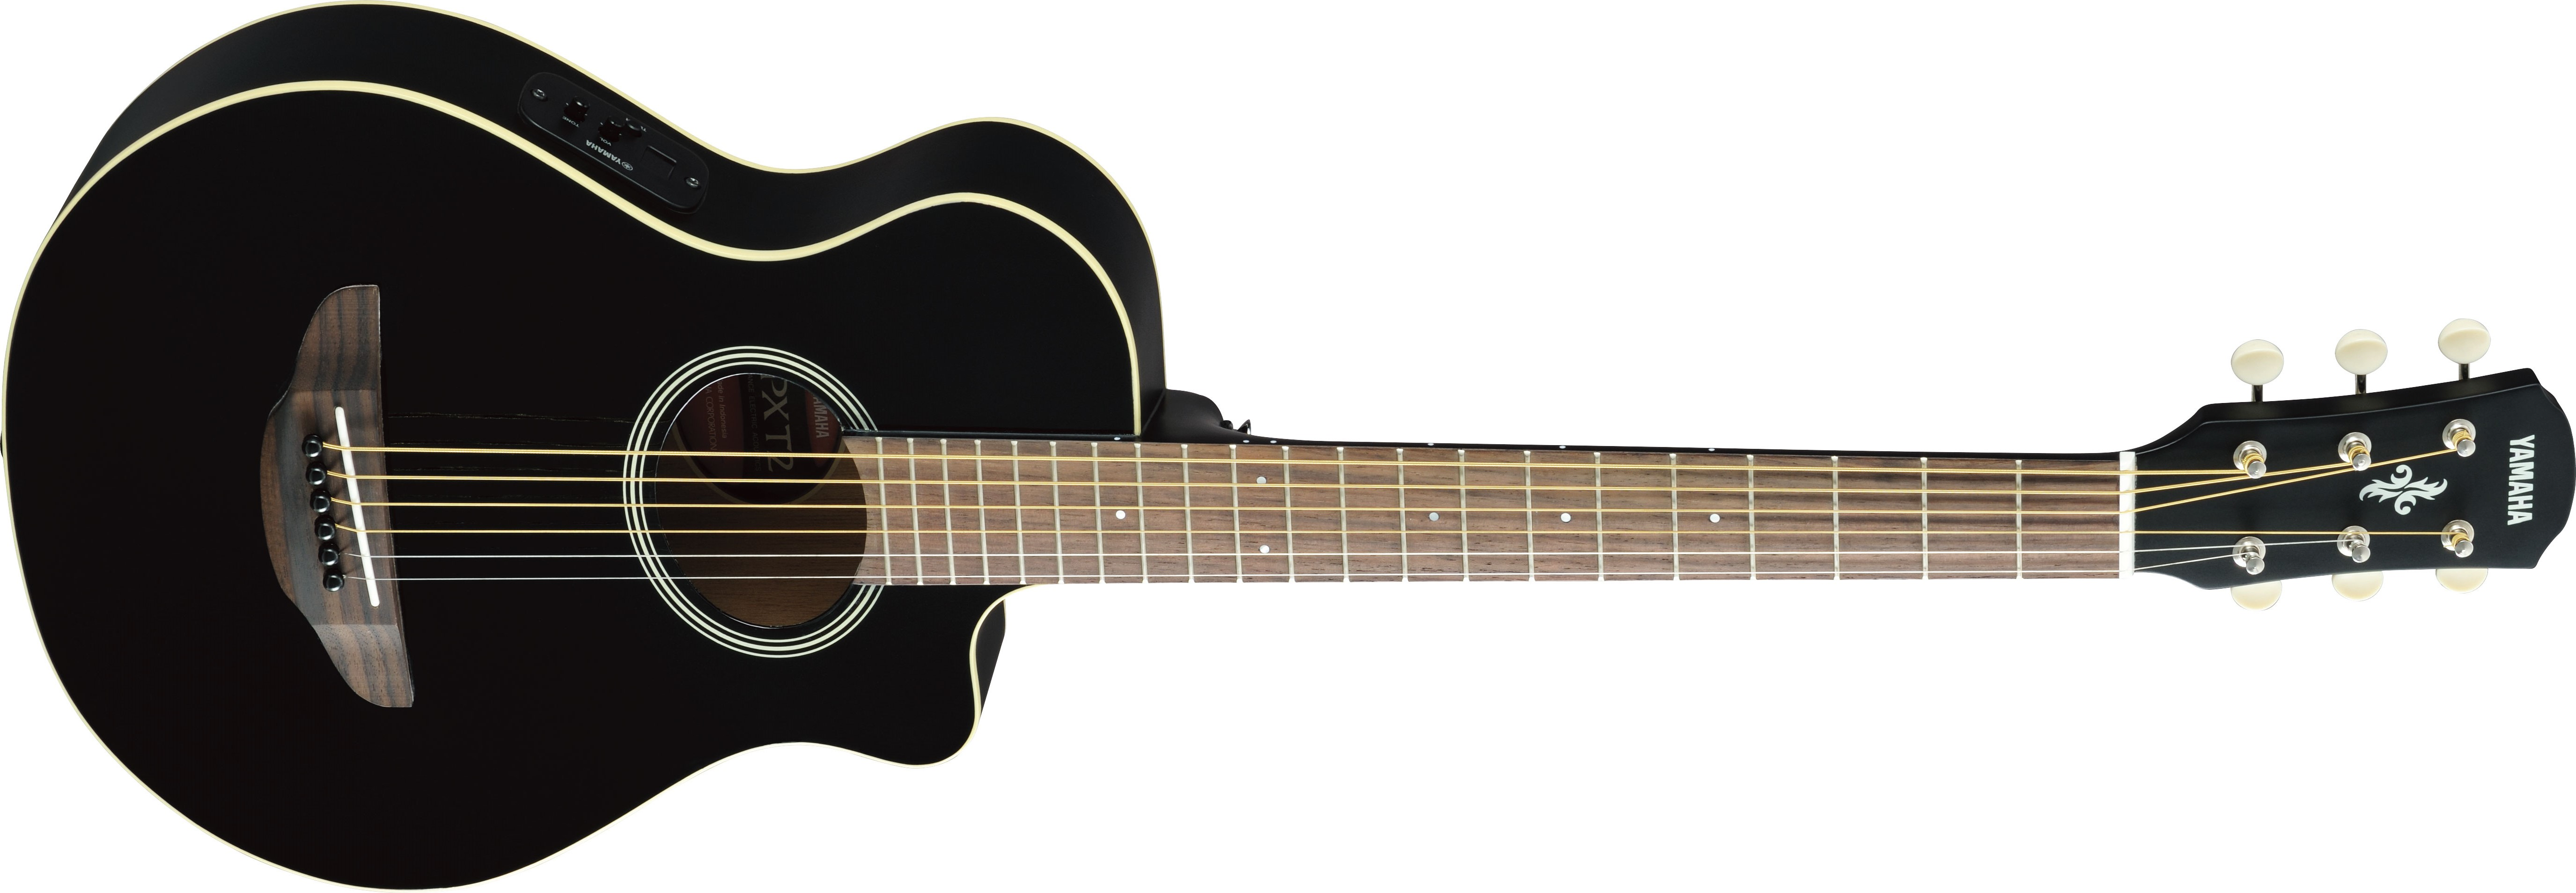 fe779f777d5 Yamaha 3/4 Size Acoustic/Electric Guitar - Black - Long & McQuade Musical  Instruments